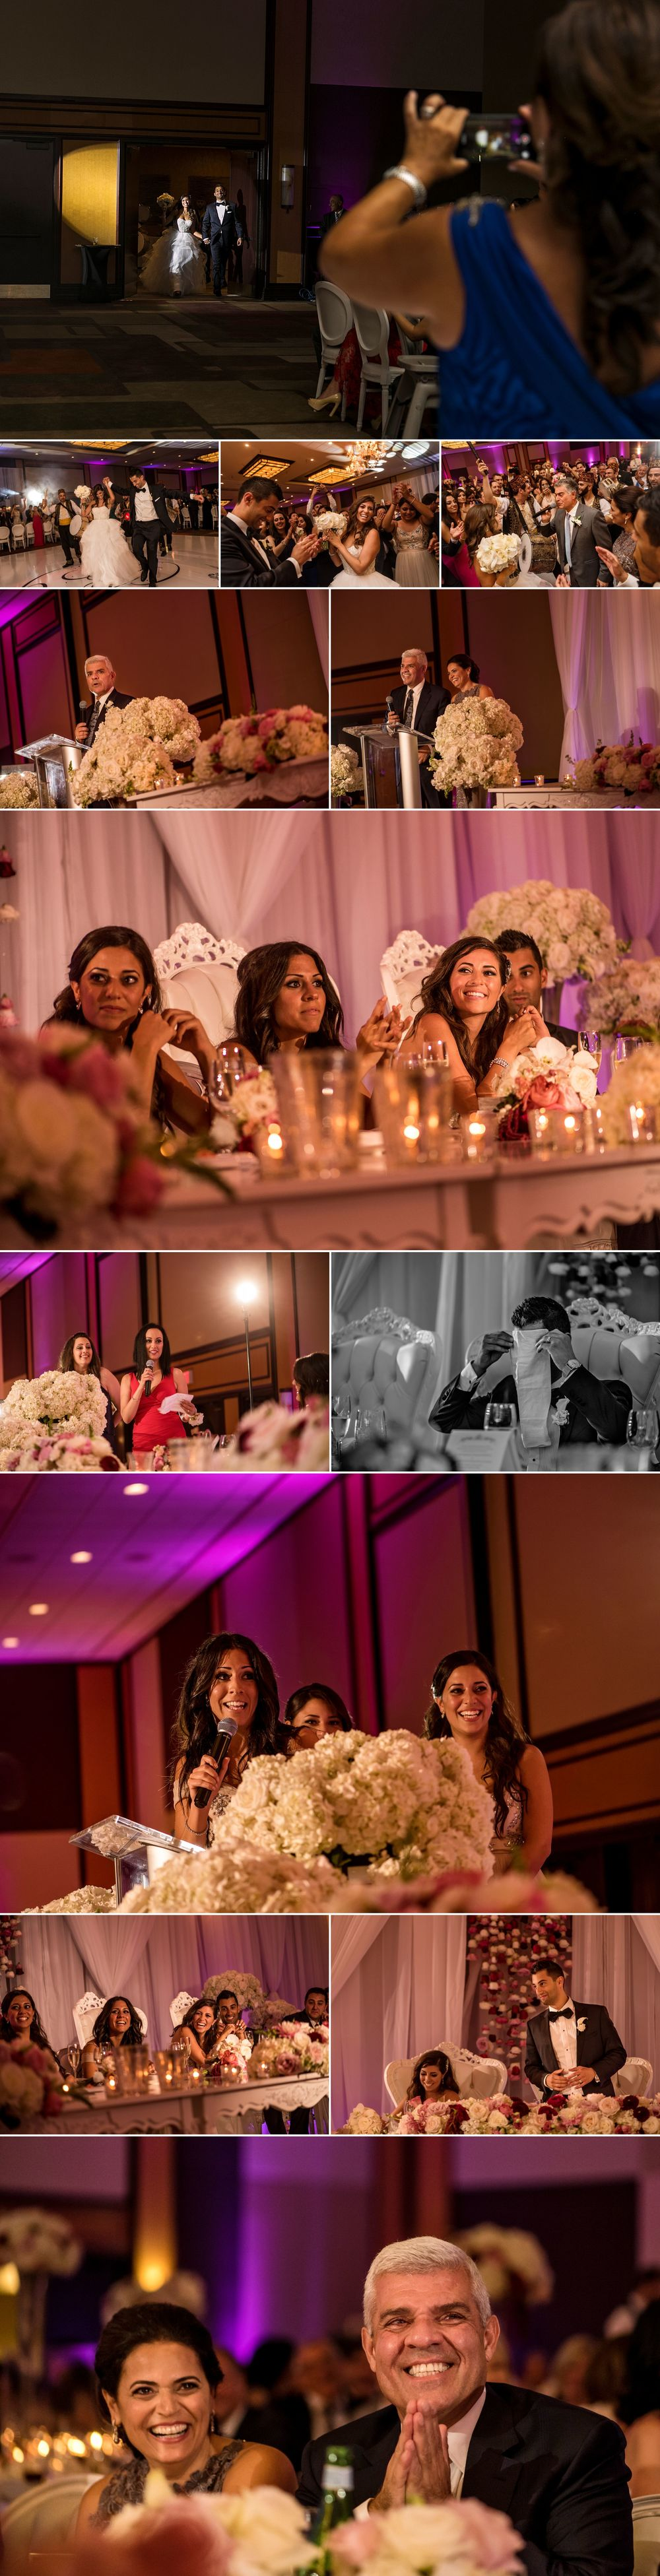 Wedding reception photographs at the Hilton Lac Lemy